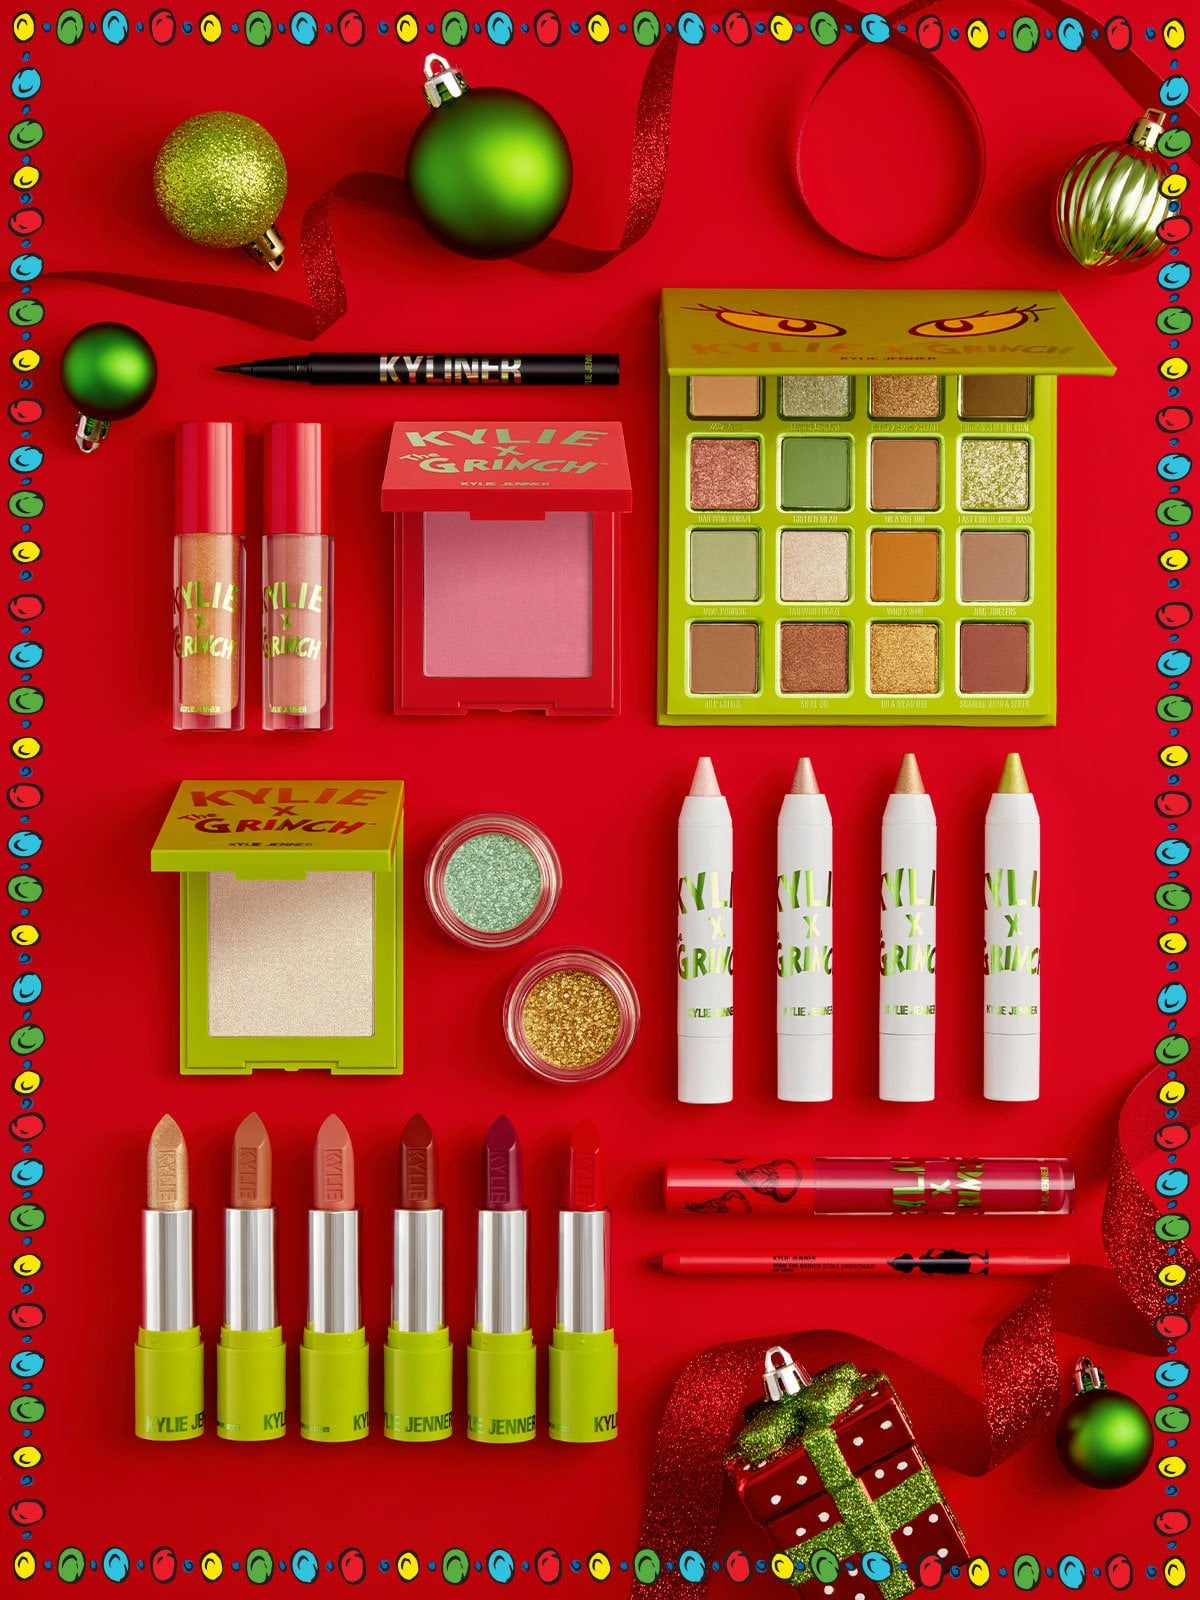 Kylie Christmas Collection 2021 Kylie Cosmetics X The Grinch Holiday Collection Popsugar Beauty